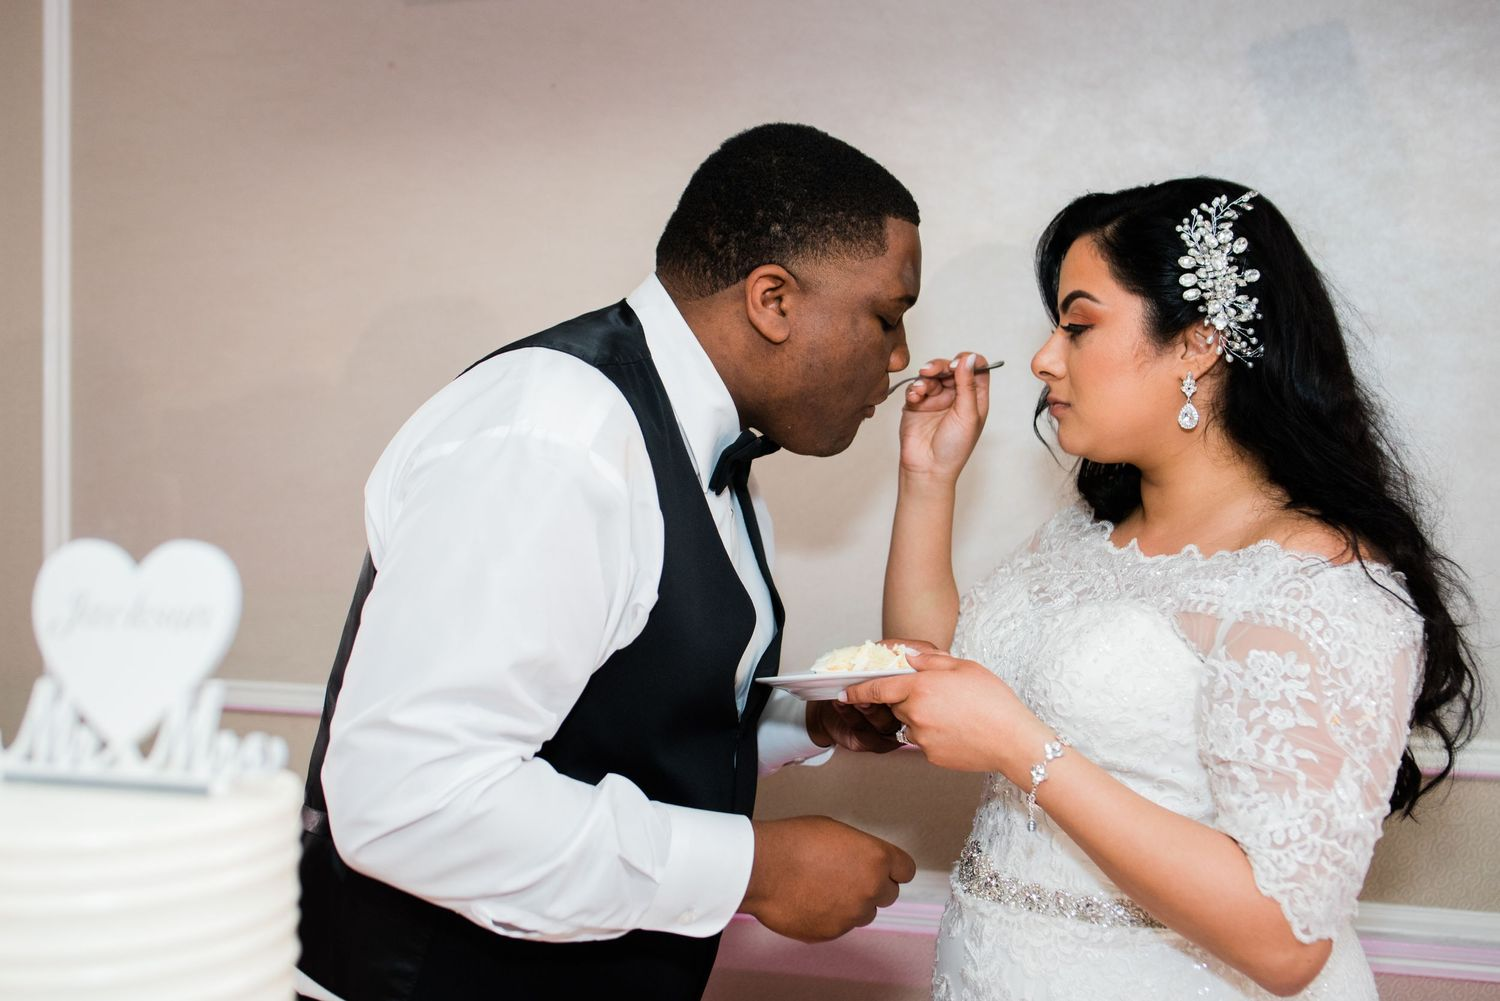 bride feeding wedding cake to groom